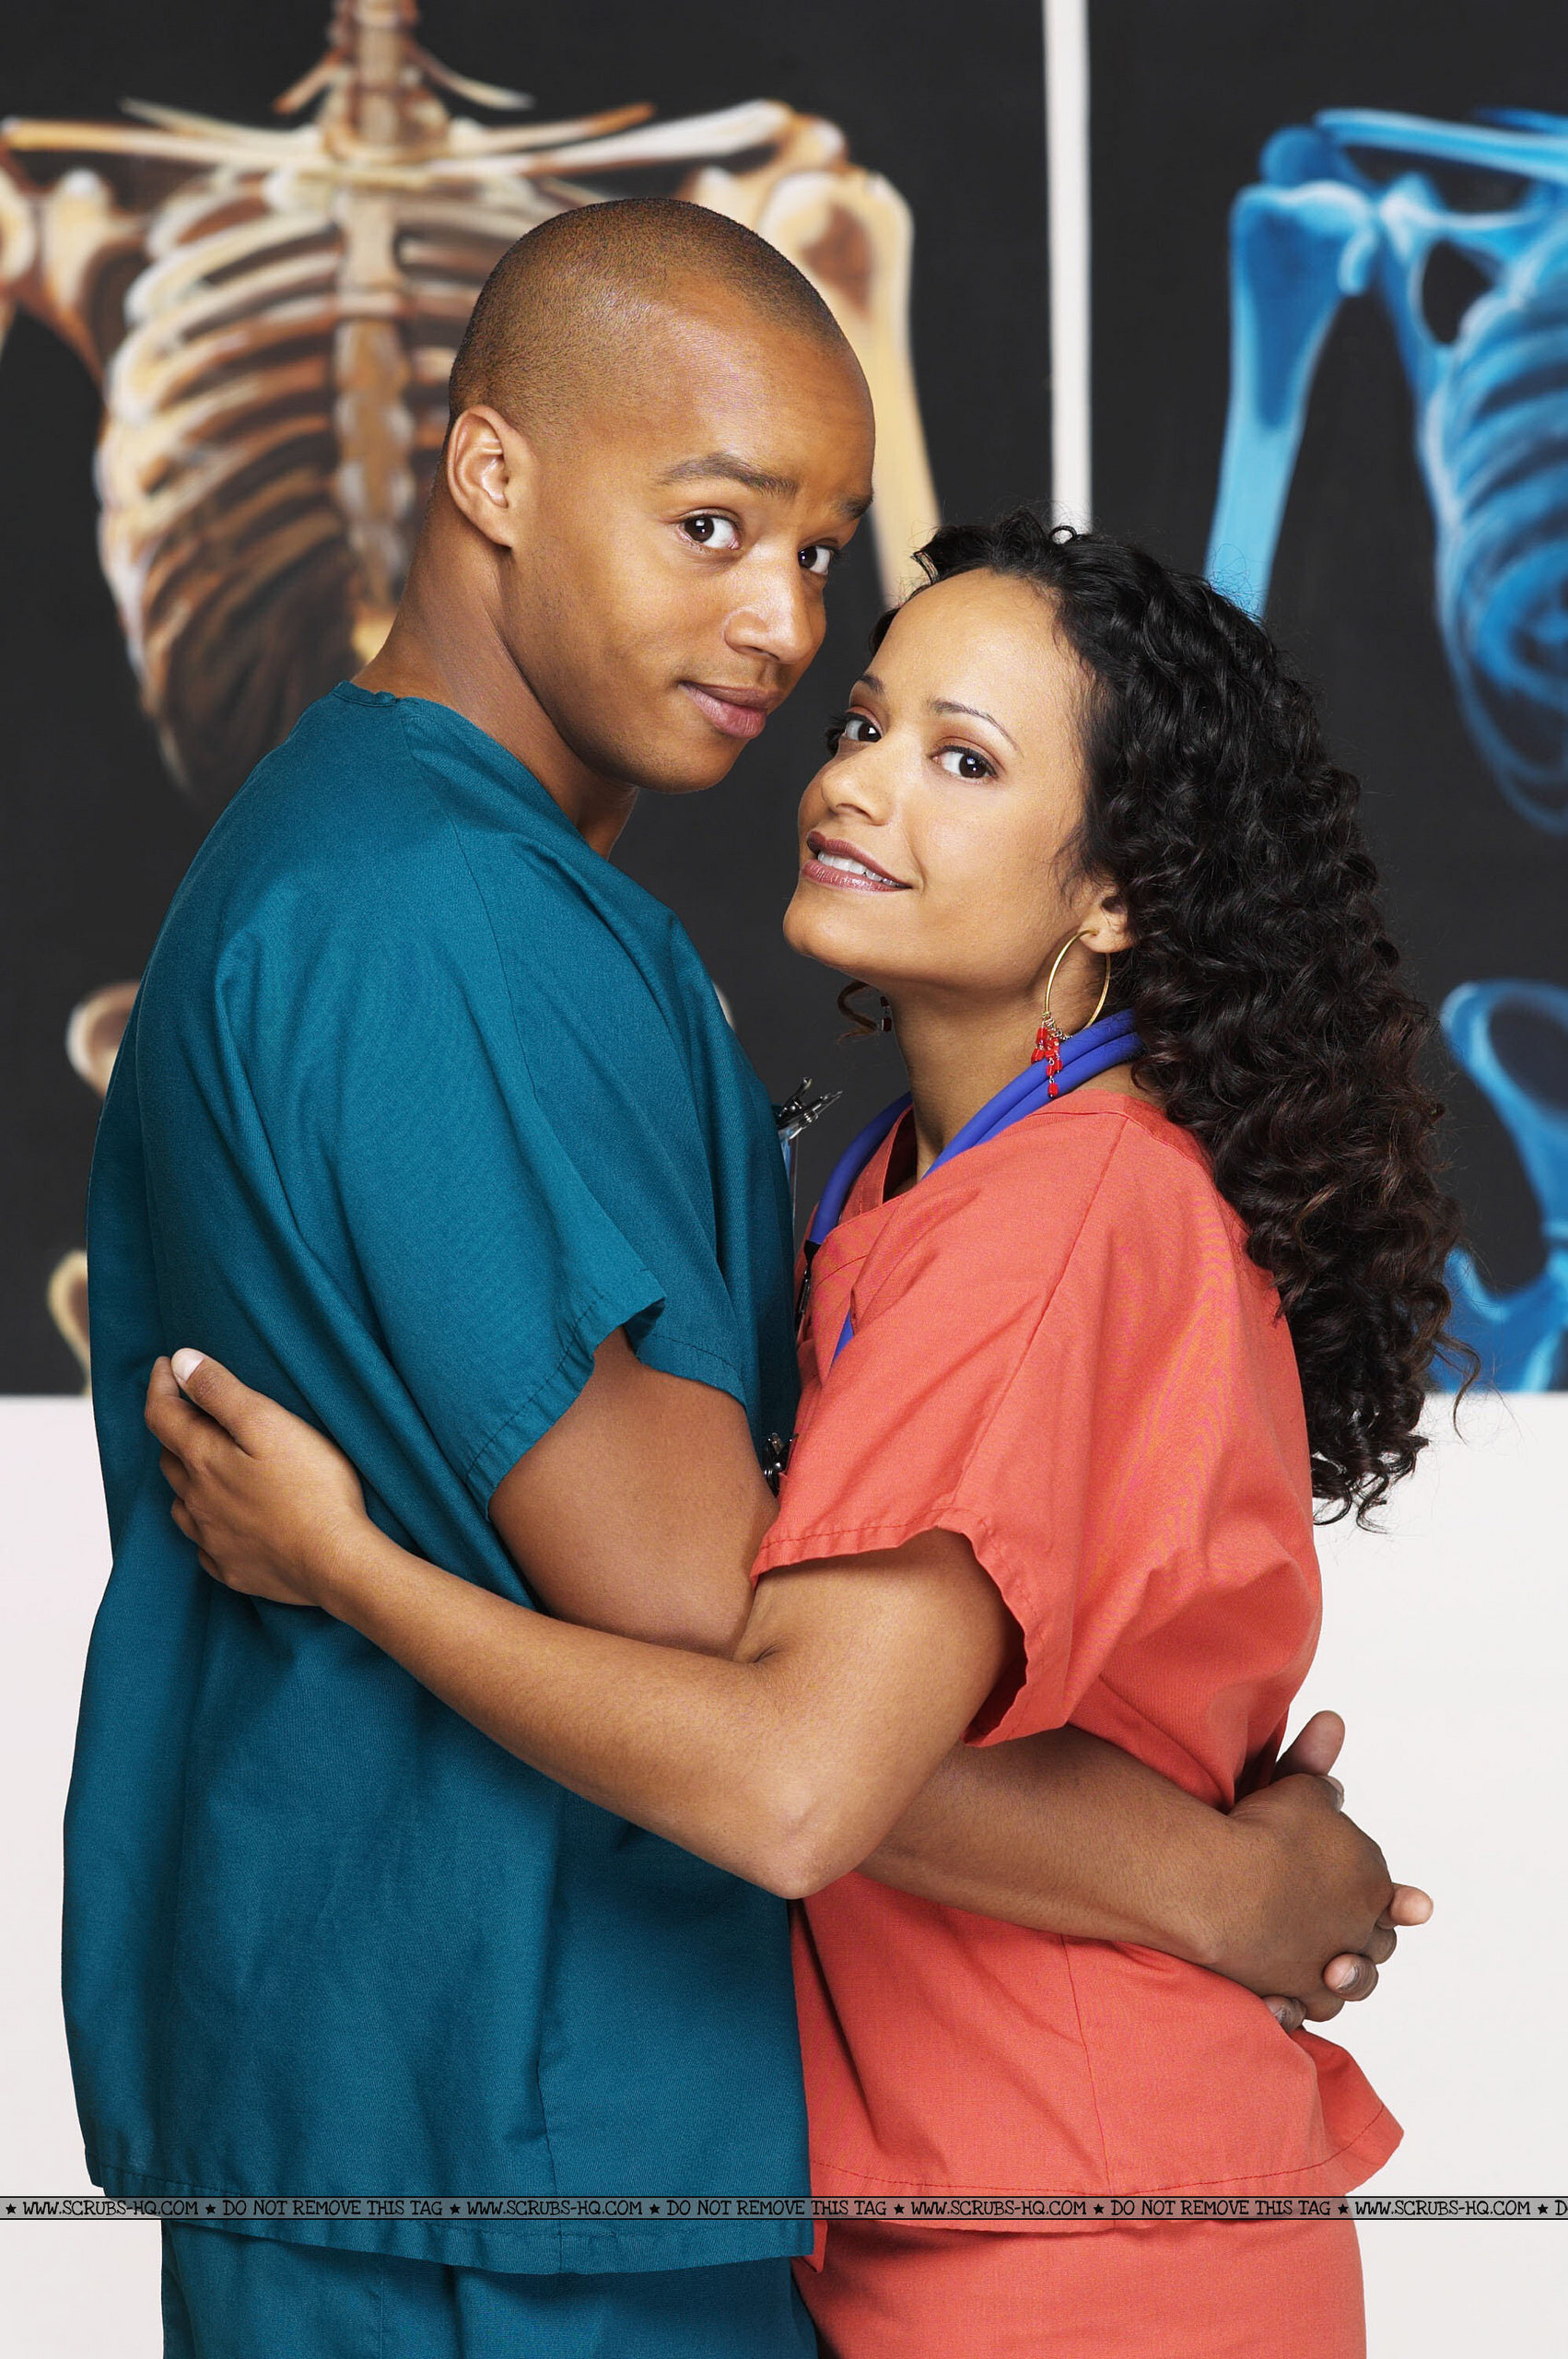 http://images2.fanpop.com/image/photos/9500000/Turk-and-Carla-HUGE-scrubs-9590555-1702-2560.jpg